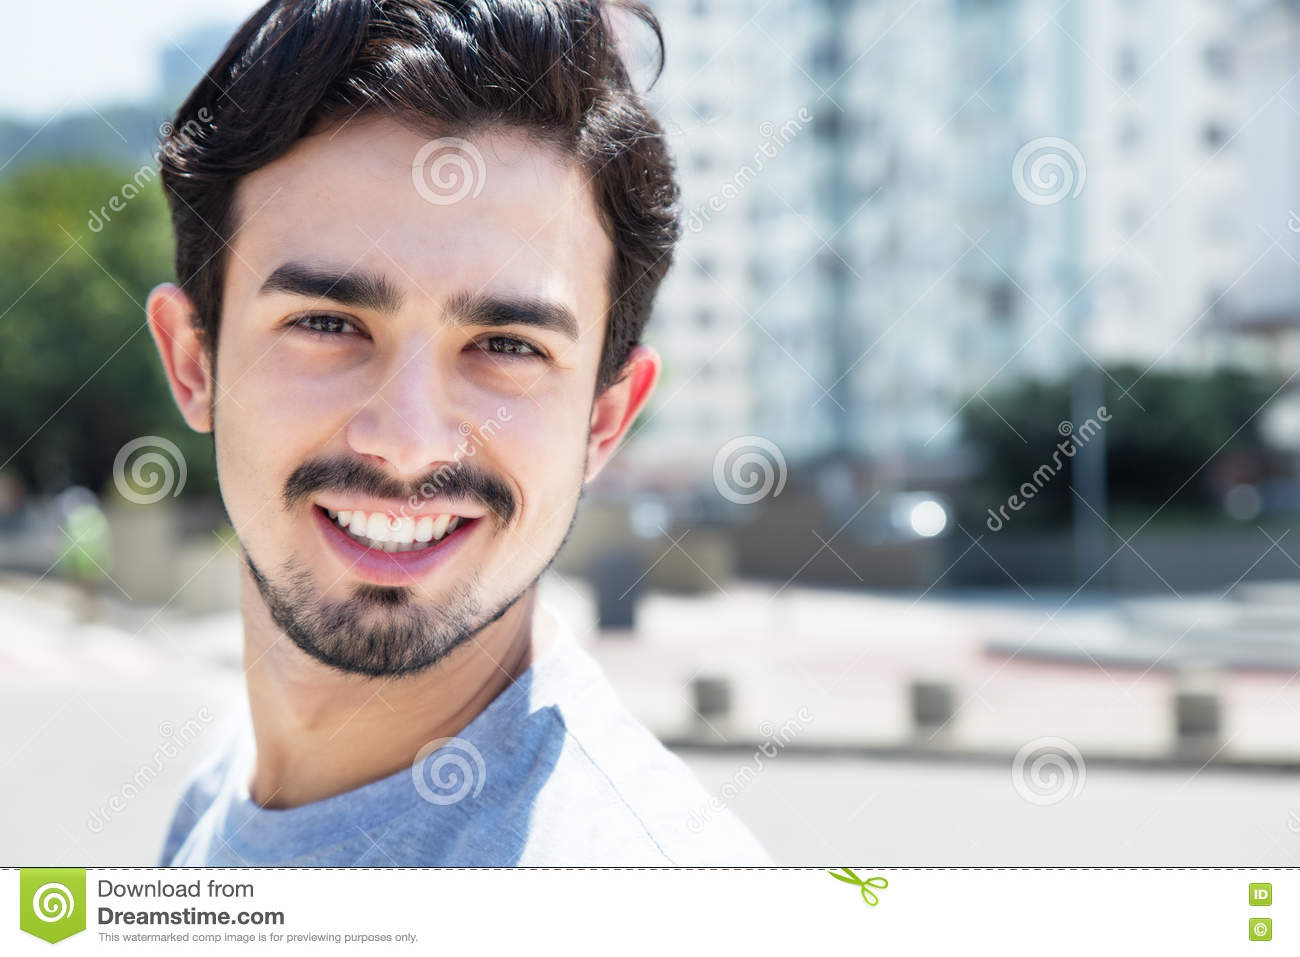 Cool Hispanic Guy In A Grey Shirt In City Stock Image